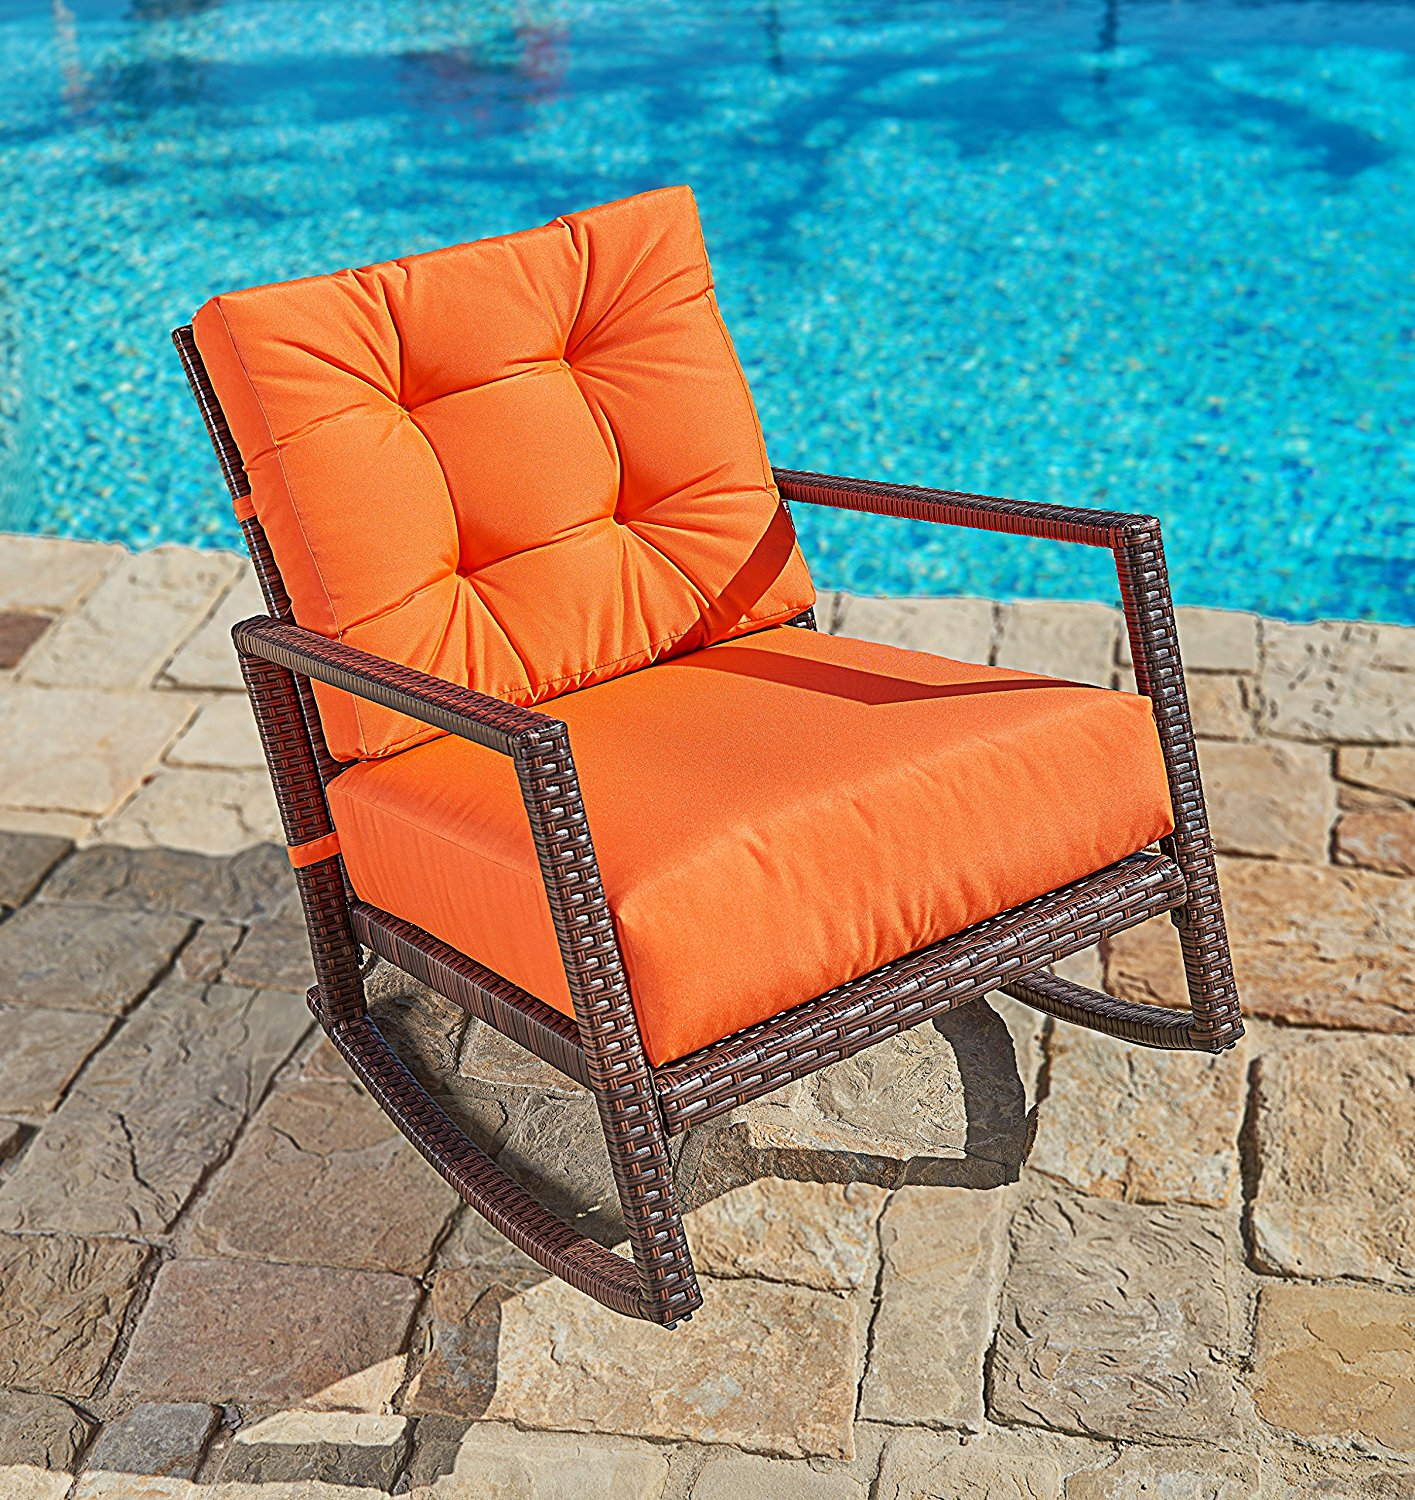 Review of Suncrown Outdoor Furniture Vibrant Orange Patio Rocking Chair